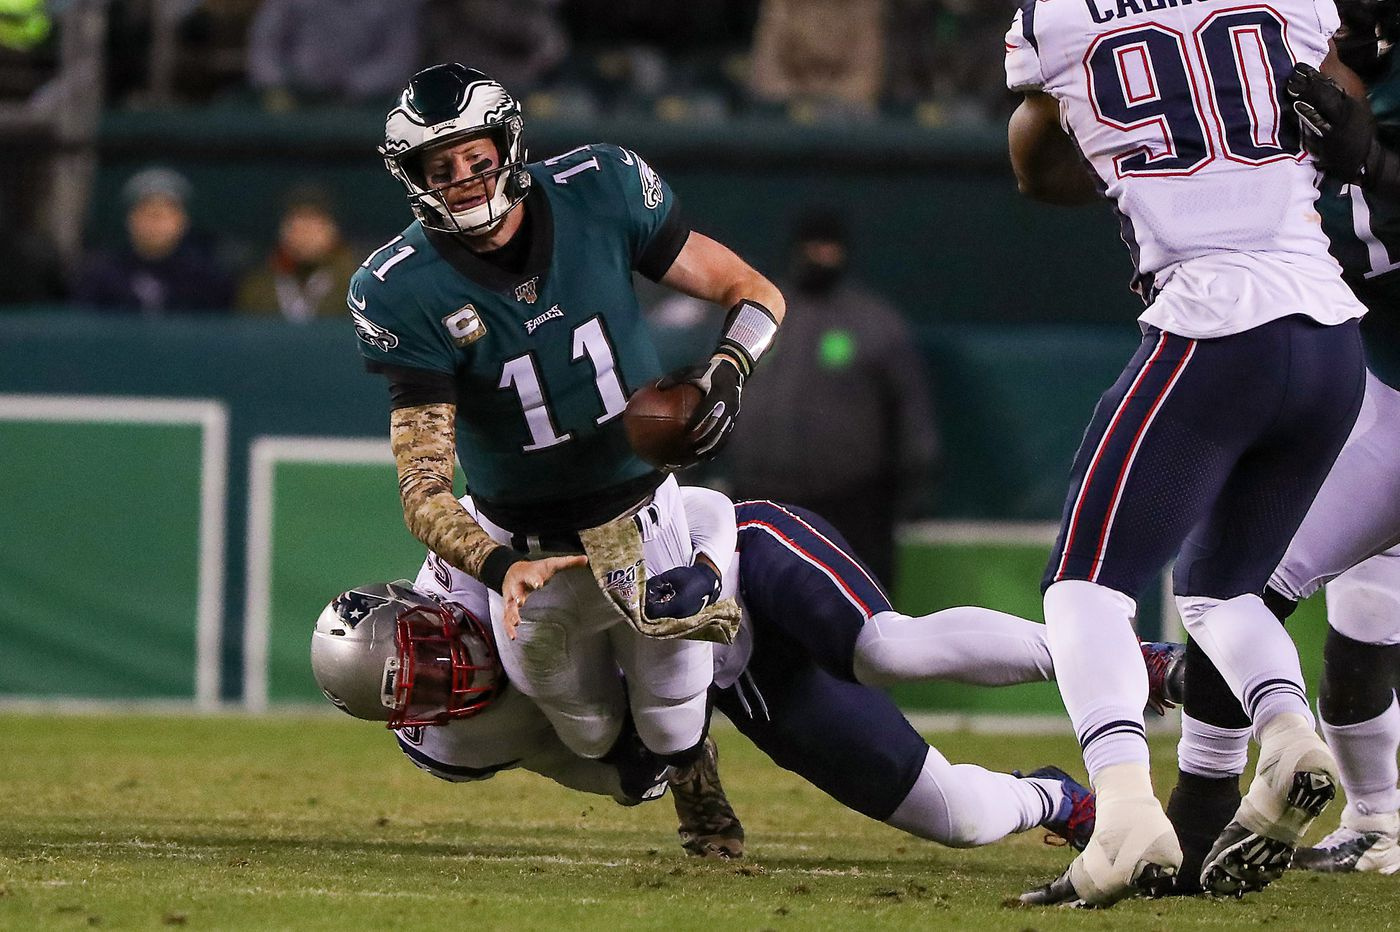 Eagles Fall Short And CEO Joe Has To Pay The Price